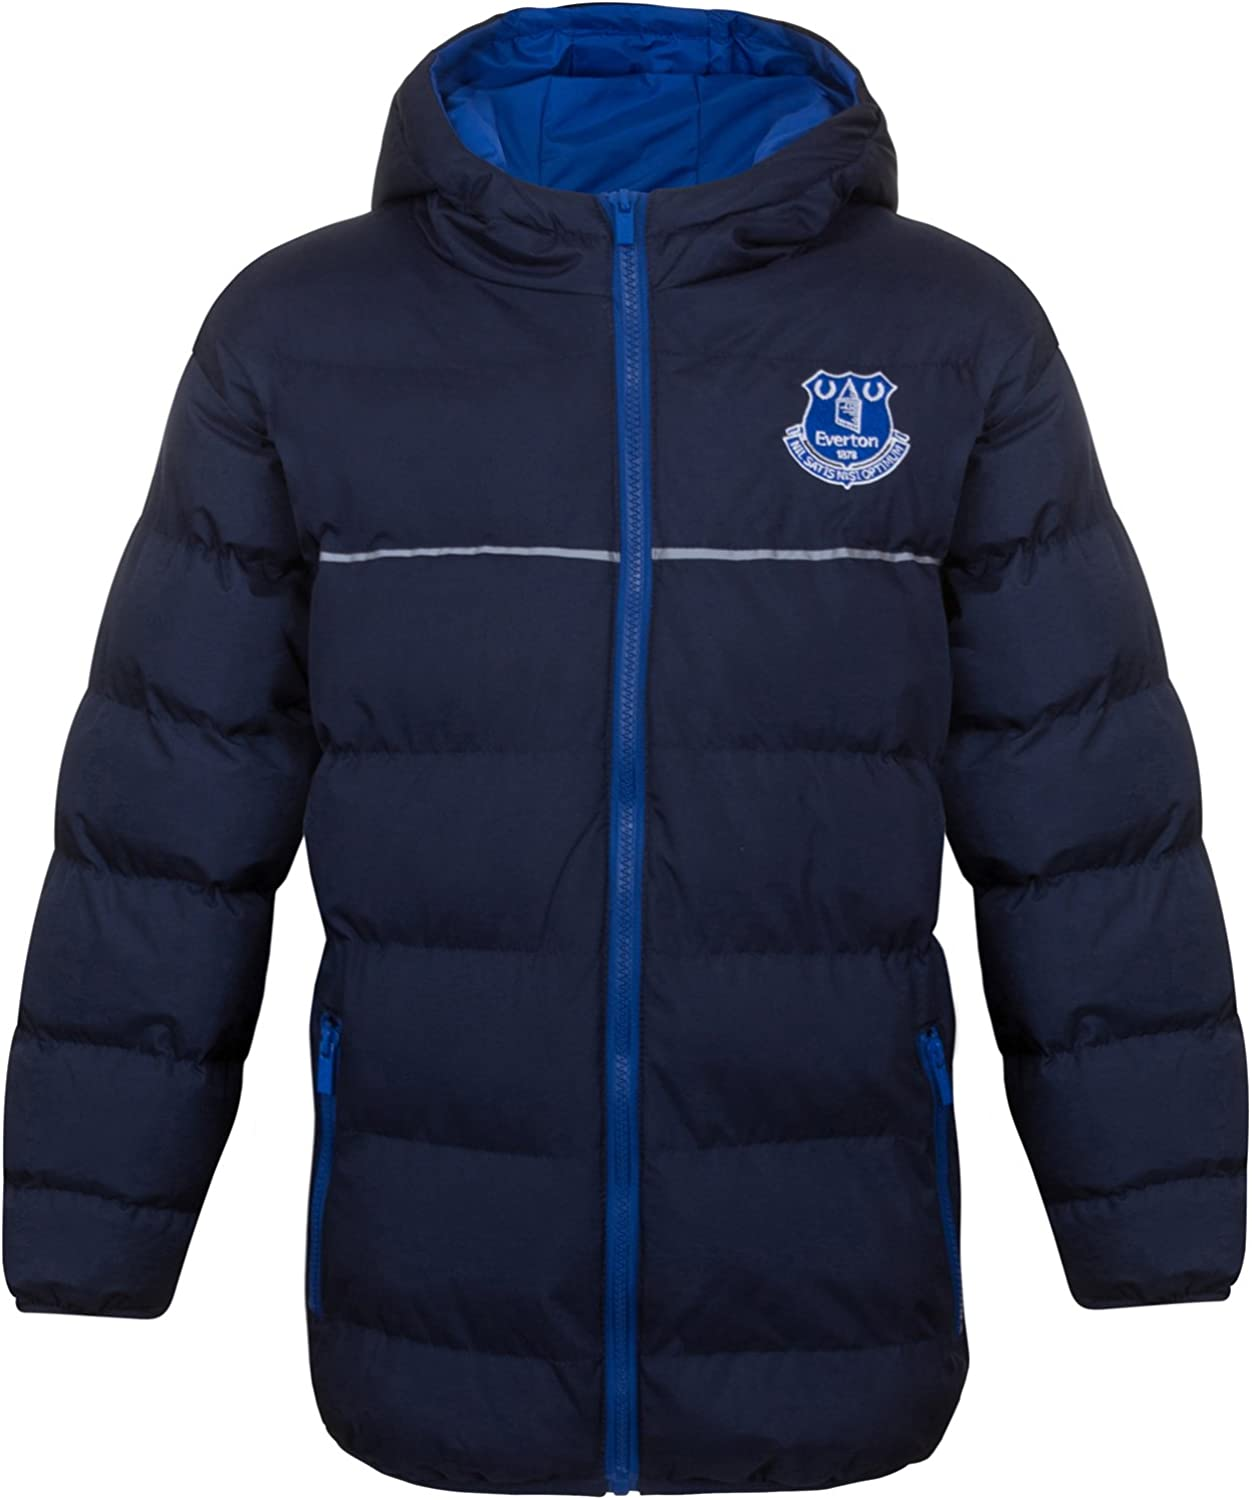 Everton F.C. OUTERWEAR ボーイズ